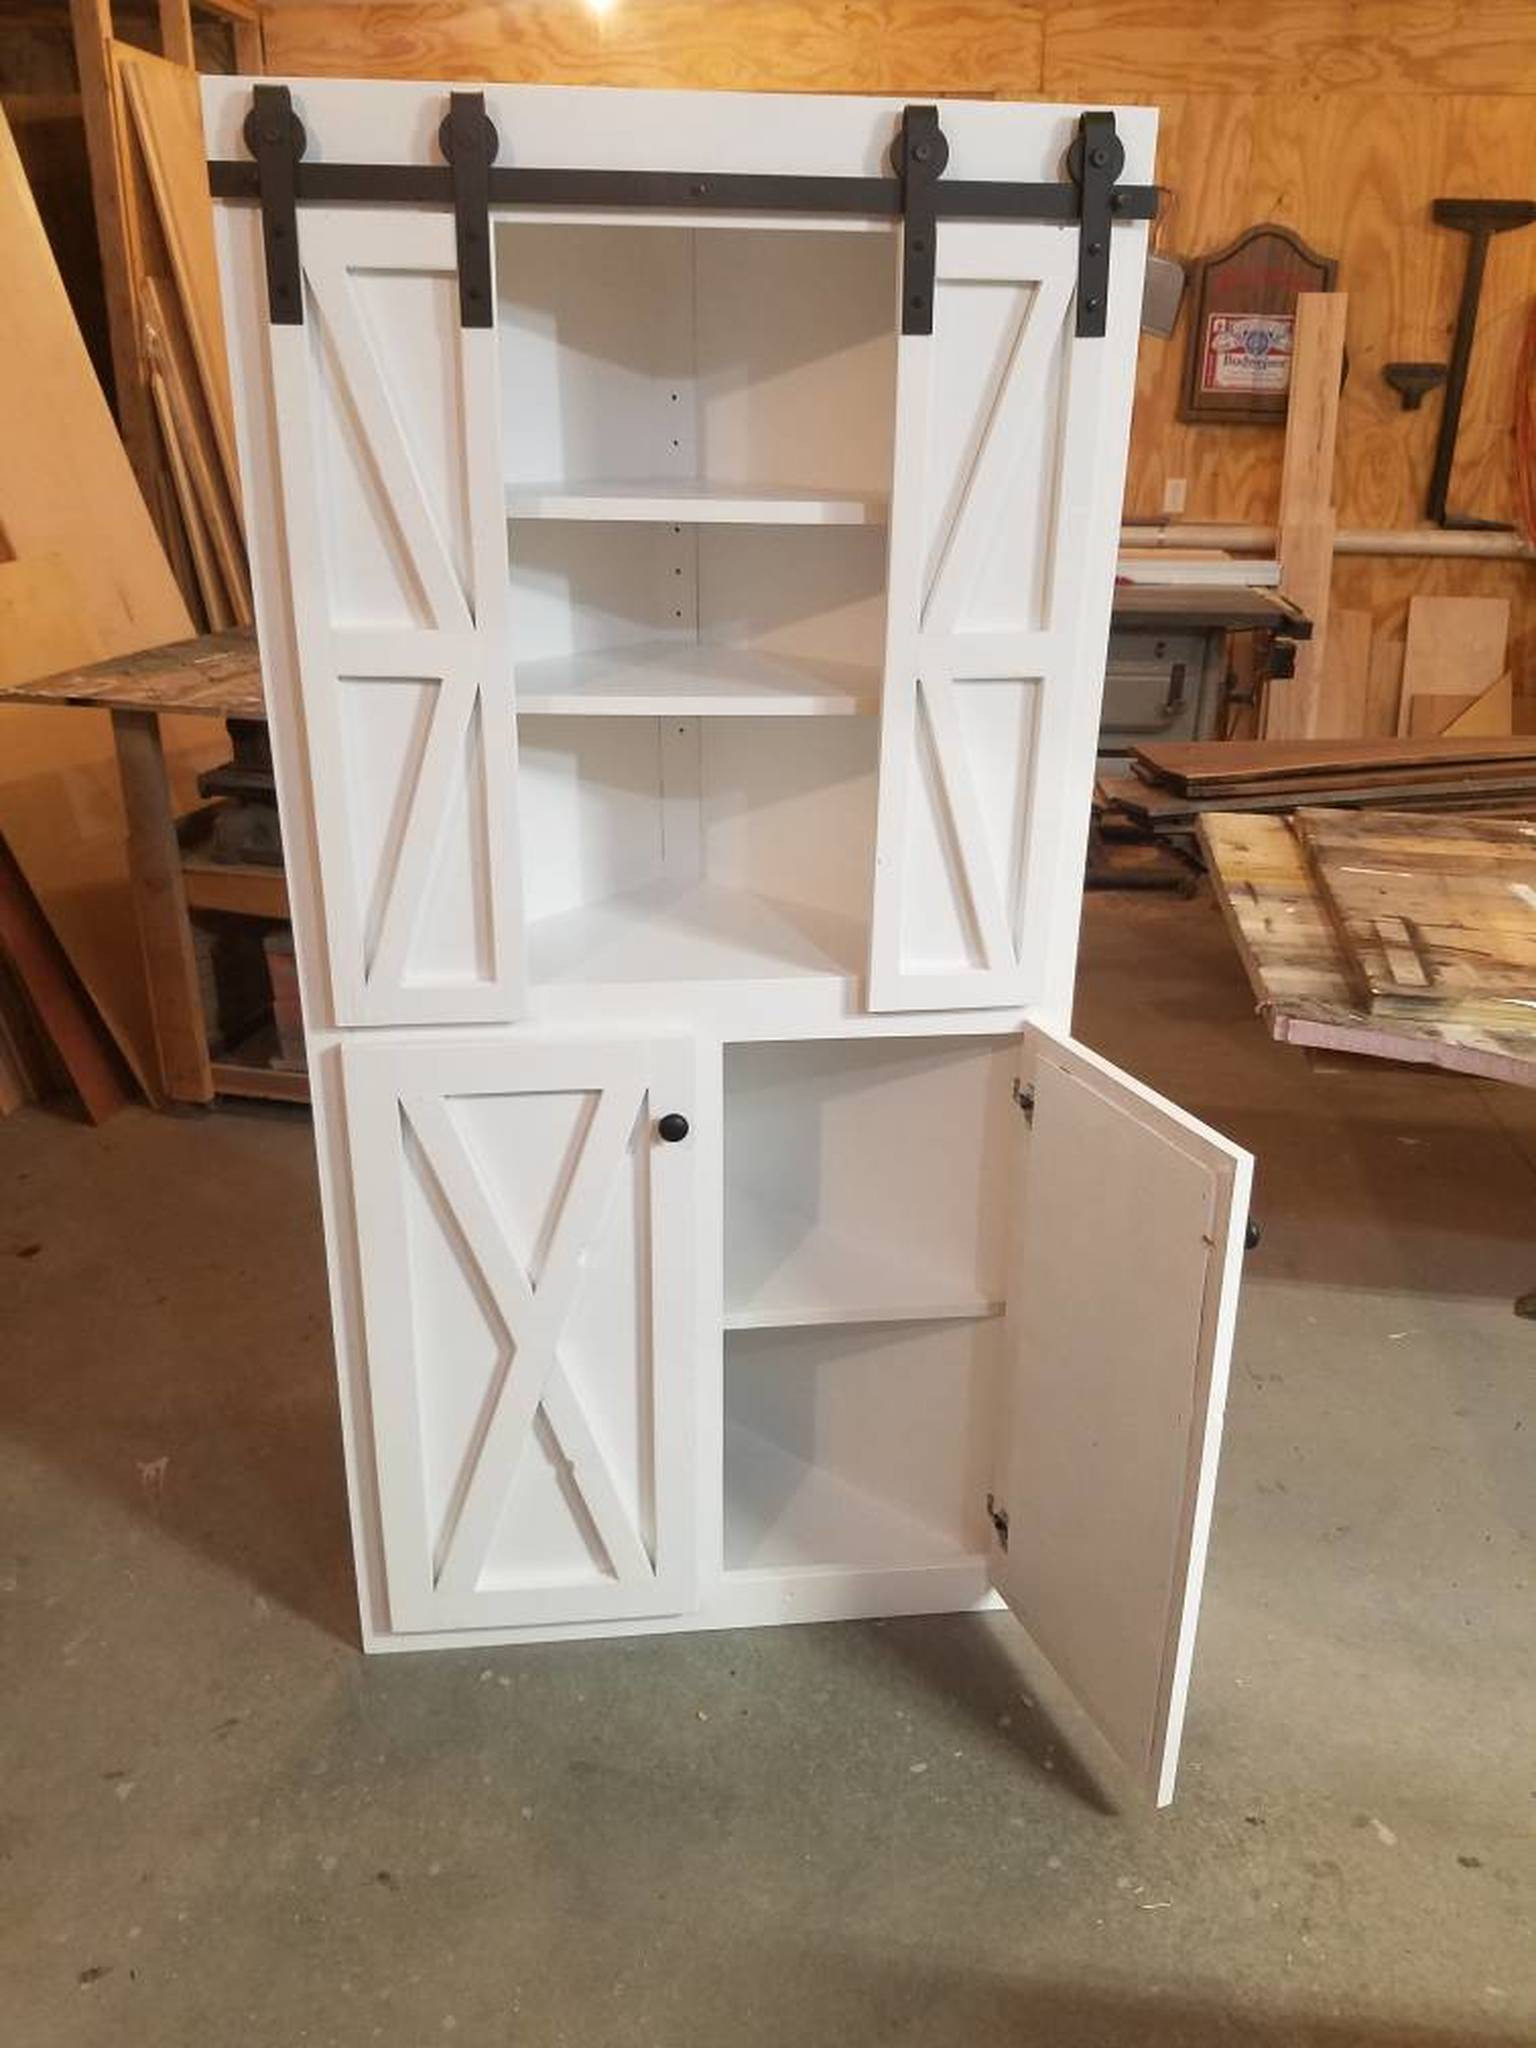 Corner Cabinets with Doors Beautiful Handcrafted Farmhouse Modern Rustic Corner Cabinet with Barn Doors